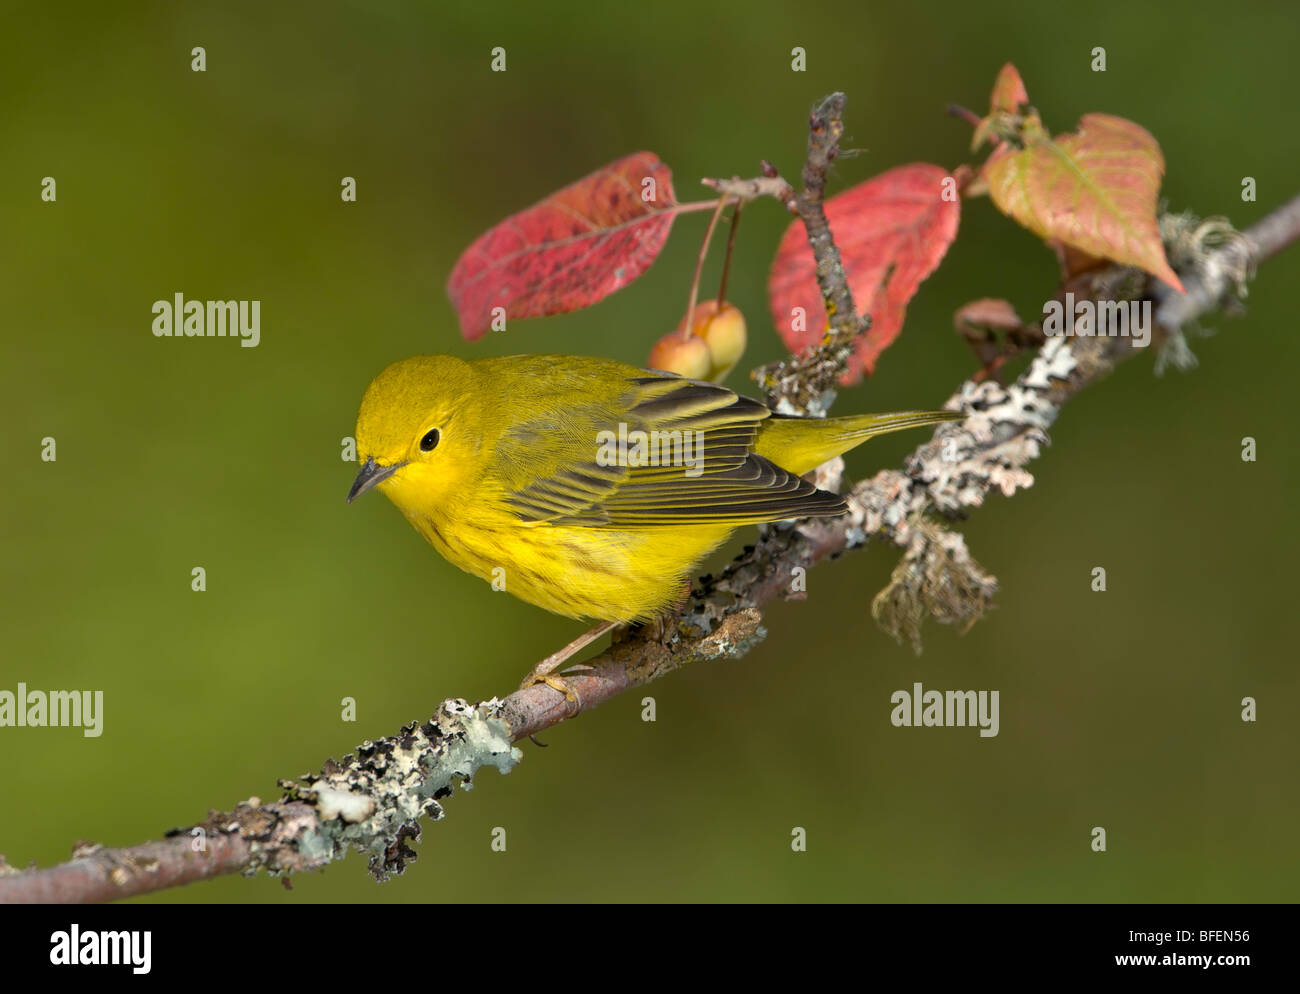 Yellow warbler (Dendroica petechia) on perch at Victoria, Vancouver Island, British Columbia, Canada - Stock Image